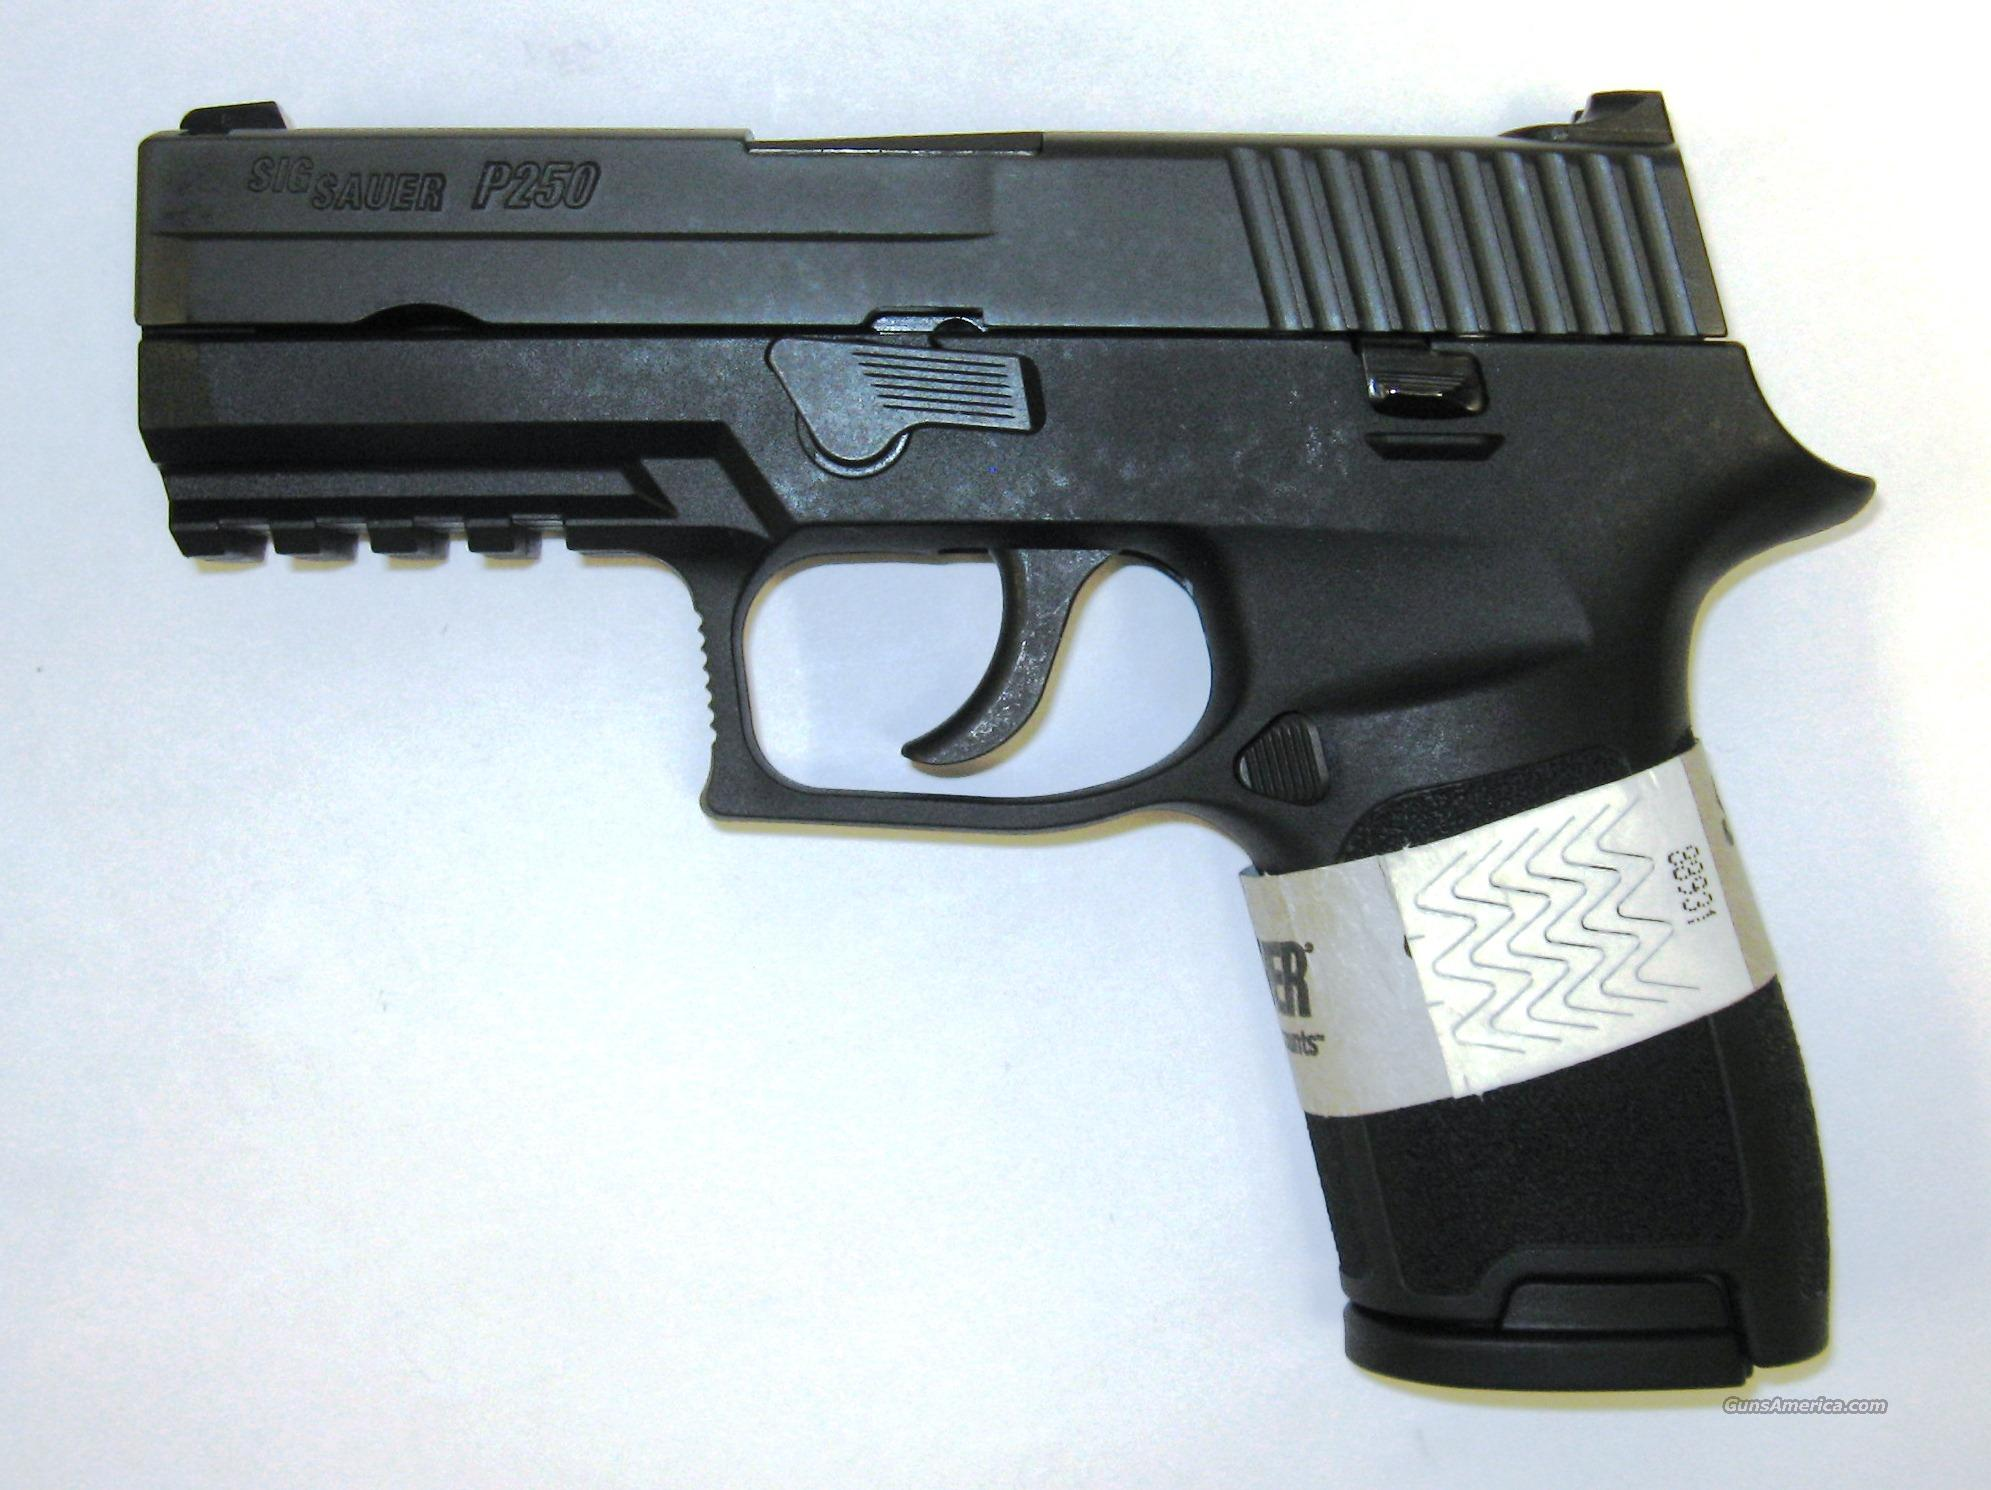 SIg Sauer P250 Compact 9MM  Guns > Pistols > Sig - Sauer/Sigarms Pistols > P250